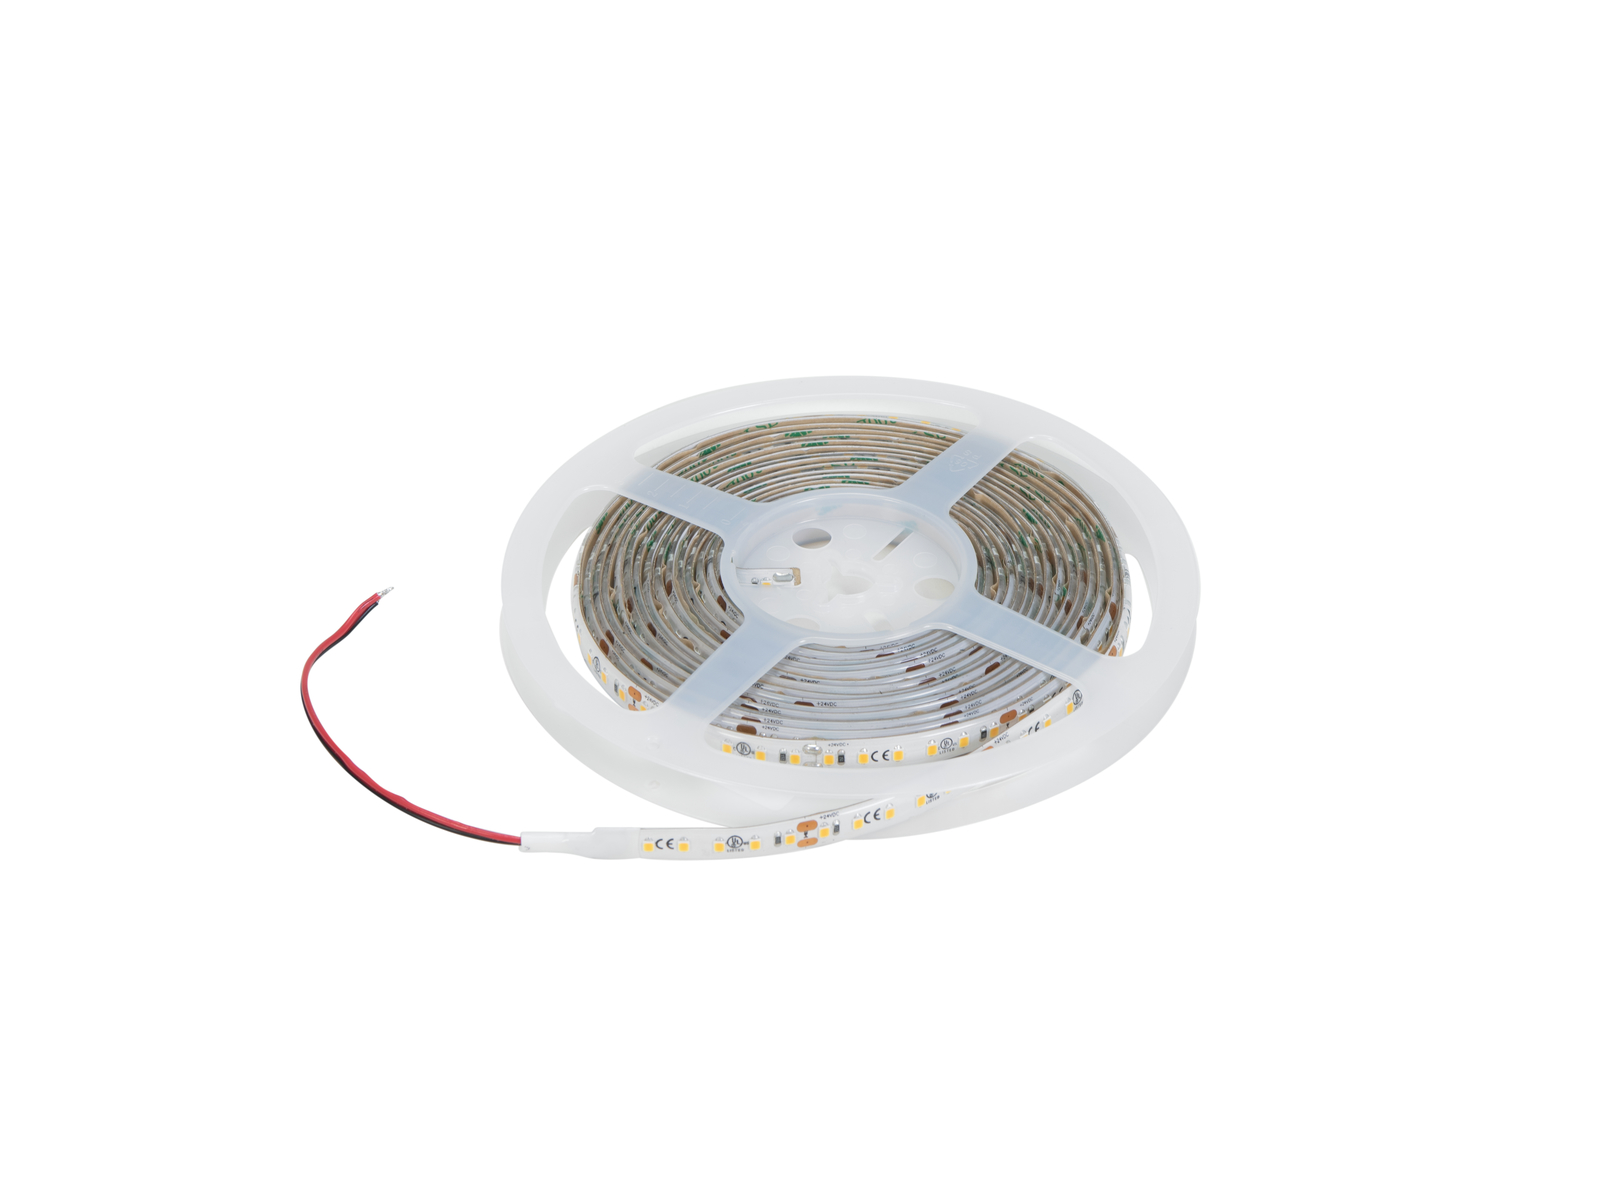 EUROLITE LED IP Strip 600 5m 2835 2700K 24V